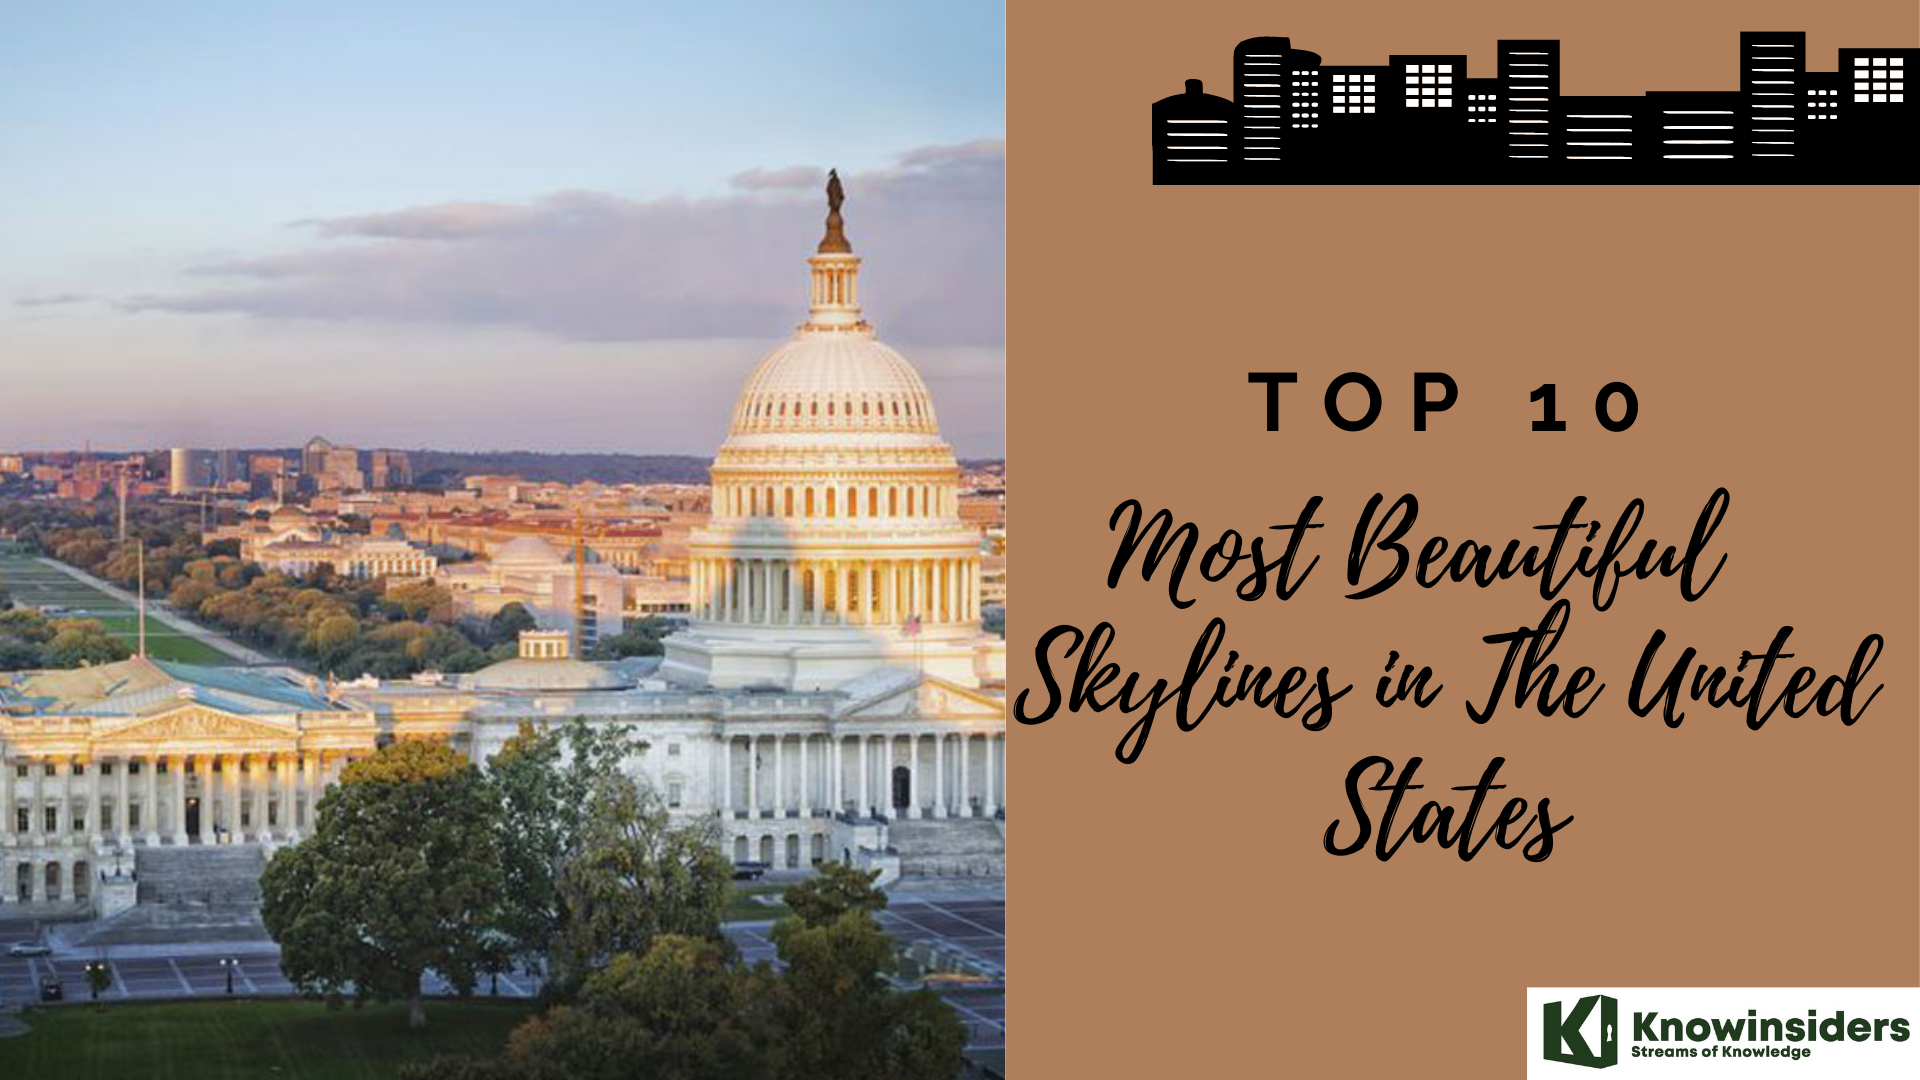 Top 10 Most Beautiful Skylines in The United States